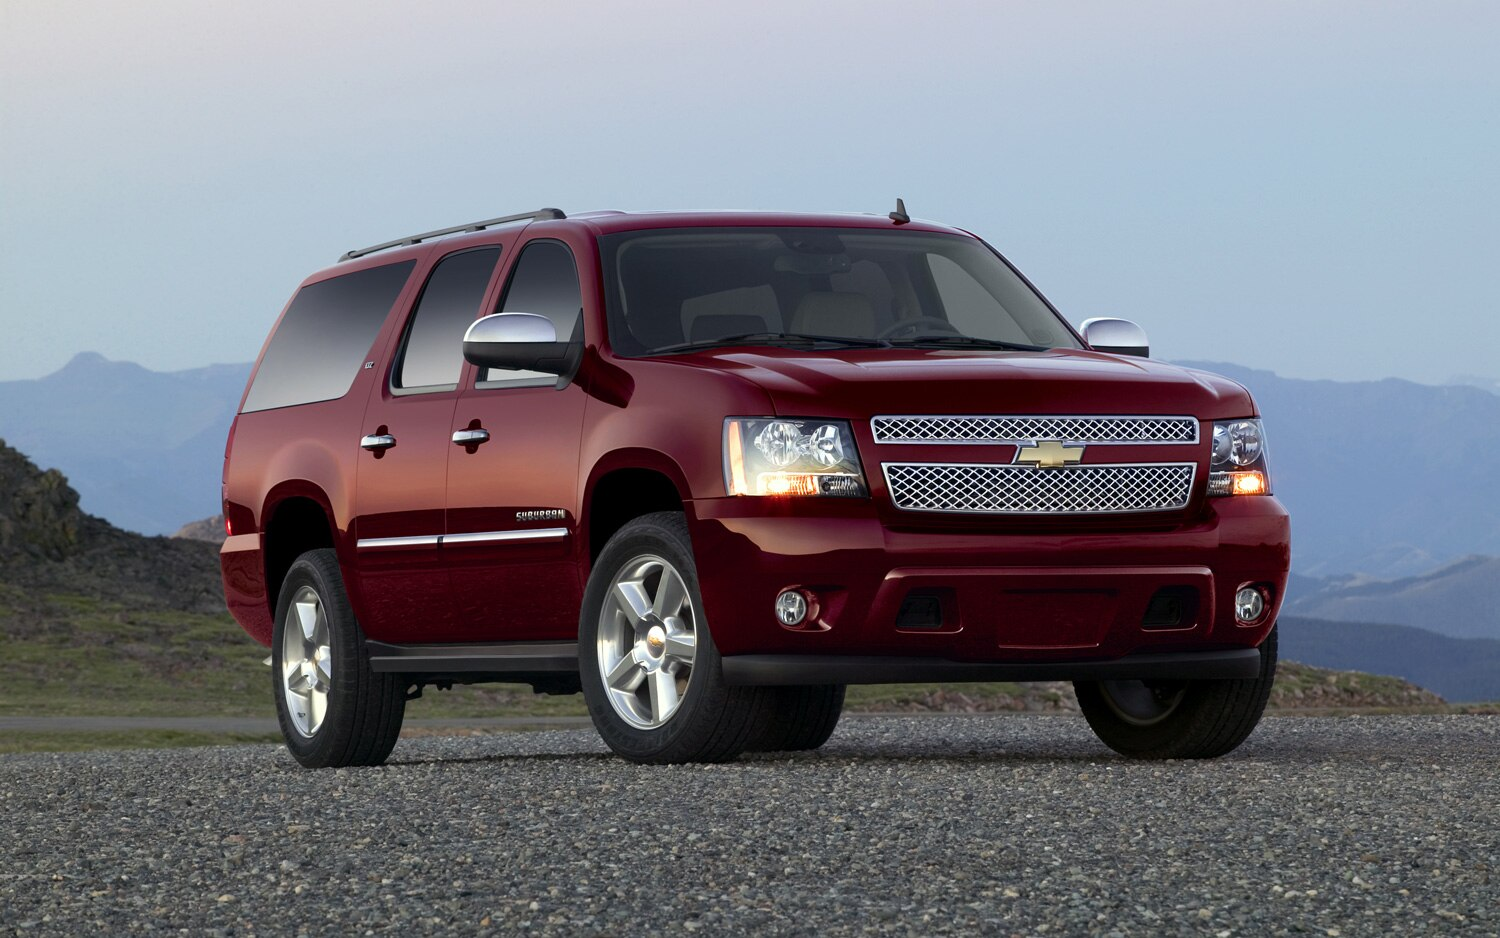 2013 Chevrolet Suburban LTZ Right Front 11